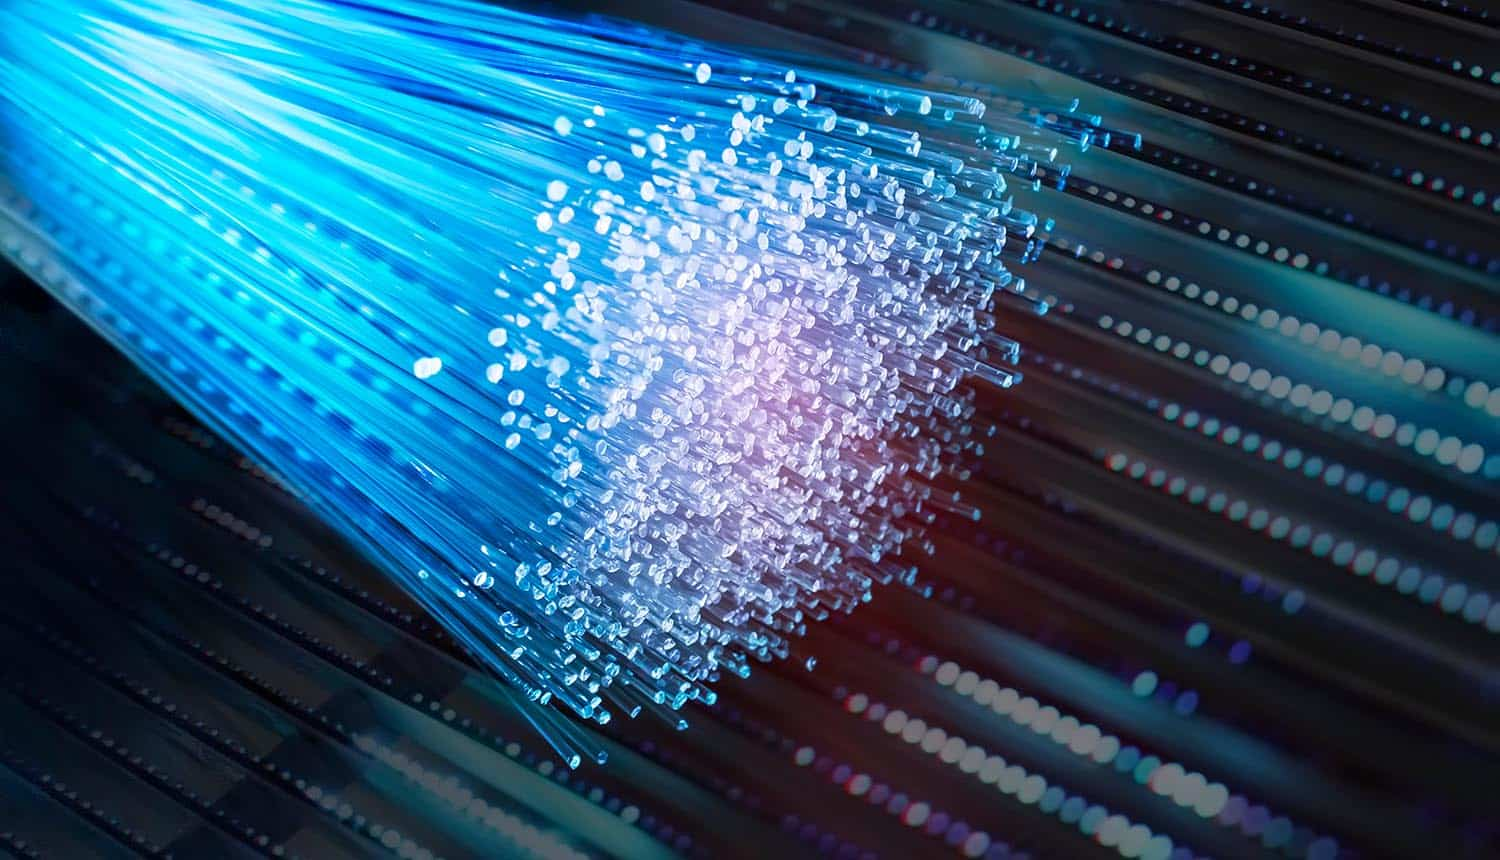 Fiber optics network cables showing net neutrality for broadband providers